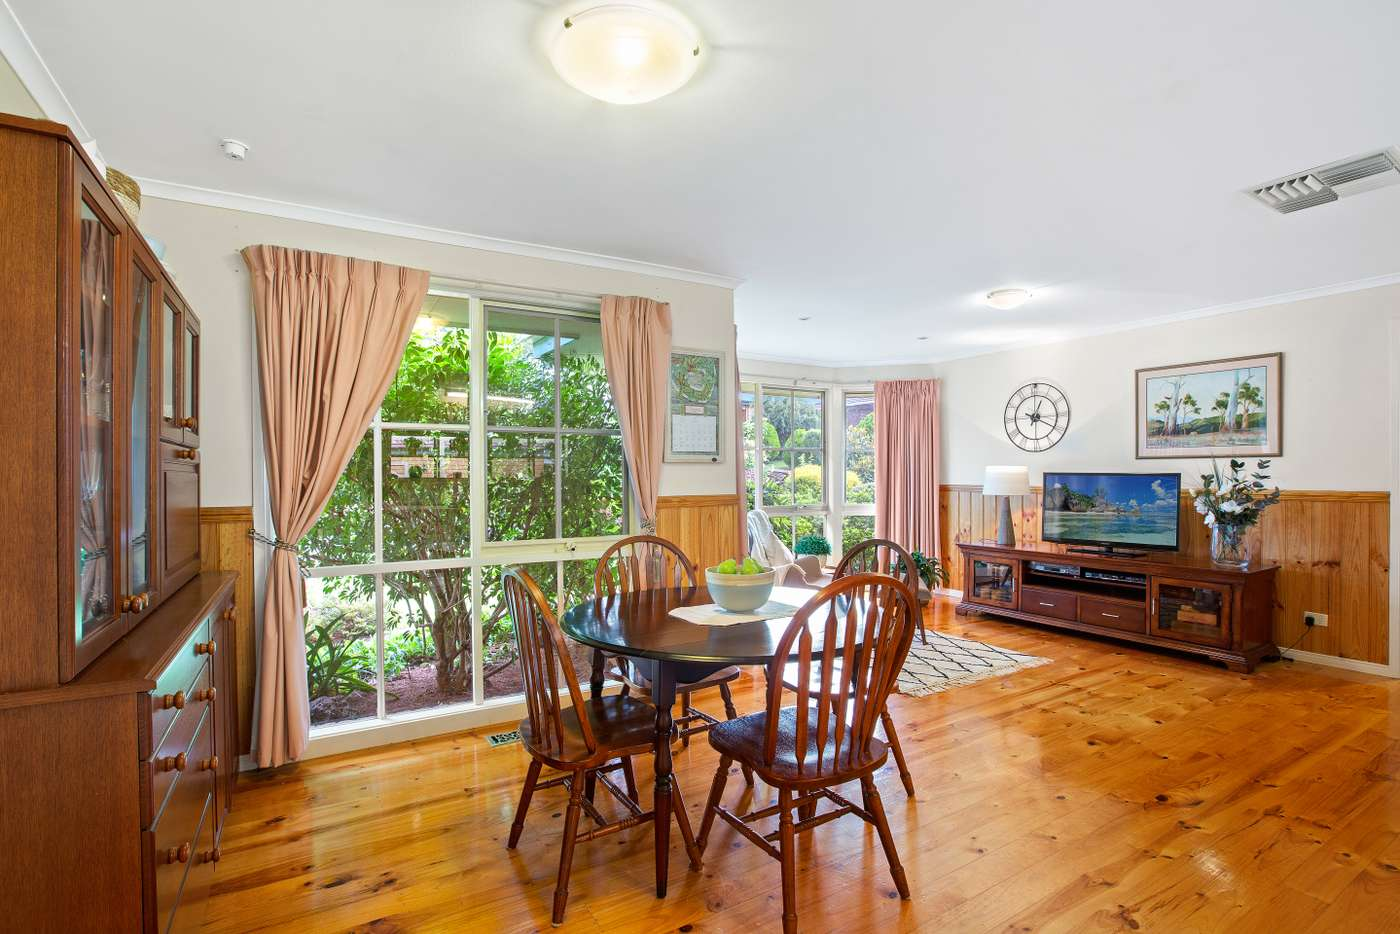 Fifth view of Homely house listing, 16 Manifold Court, Croydon South VIC 3136